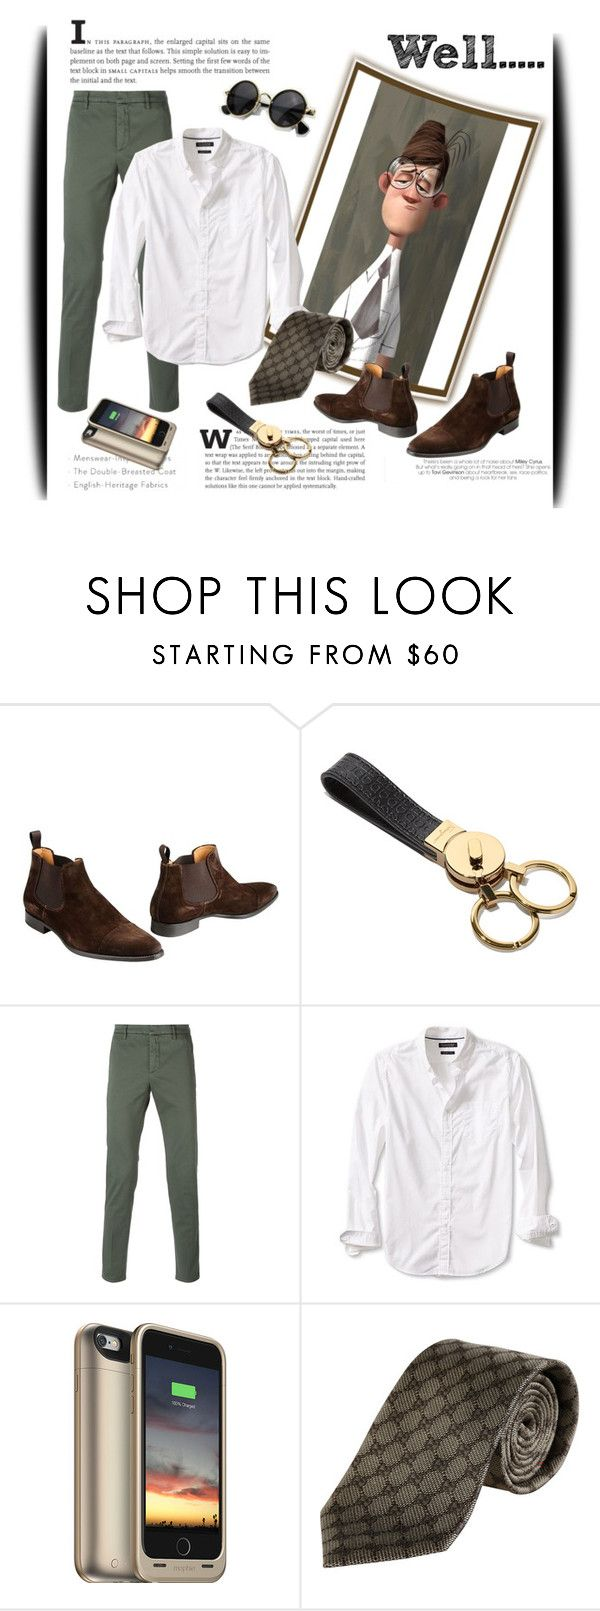 """Well?...."" by maytal-gazit ❤ liked on Polyvore featuring Leonardo Principi, Salvatore Ferragamo, Dondup, Banana Republic, Mophie and Gucci"